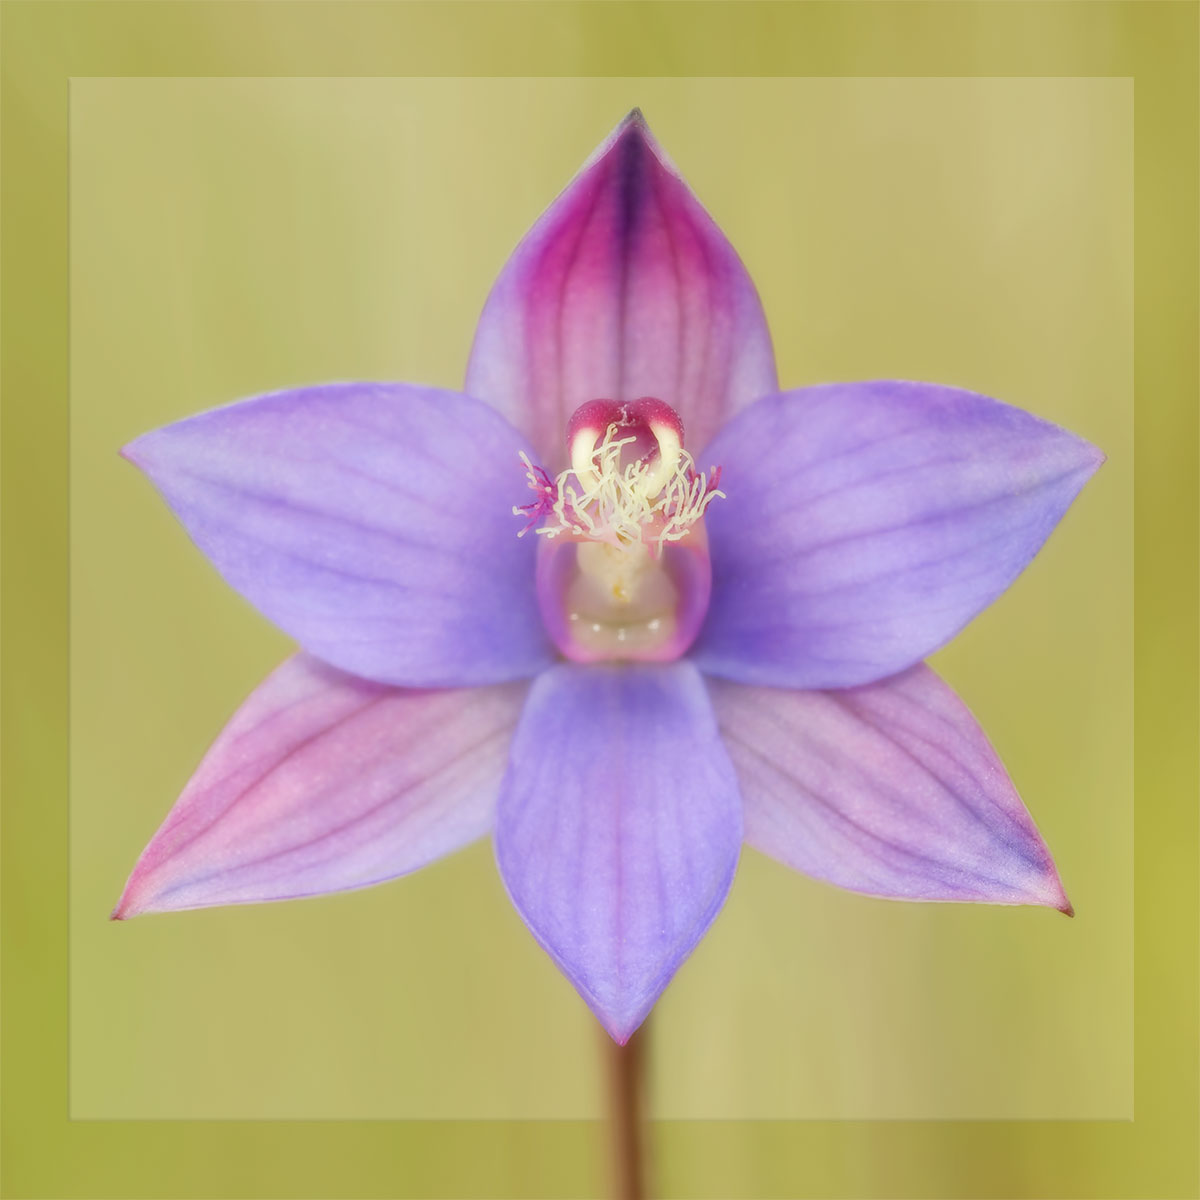 Beasts & Blossoms Nature Photography & Handmade Jewellery - every purchase supports wildlife conservation (image: plum sun orchid)